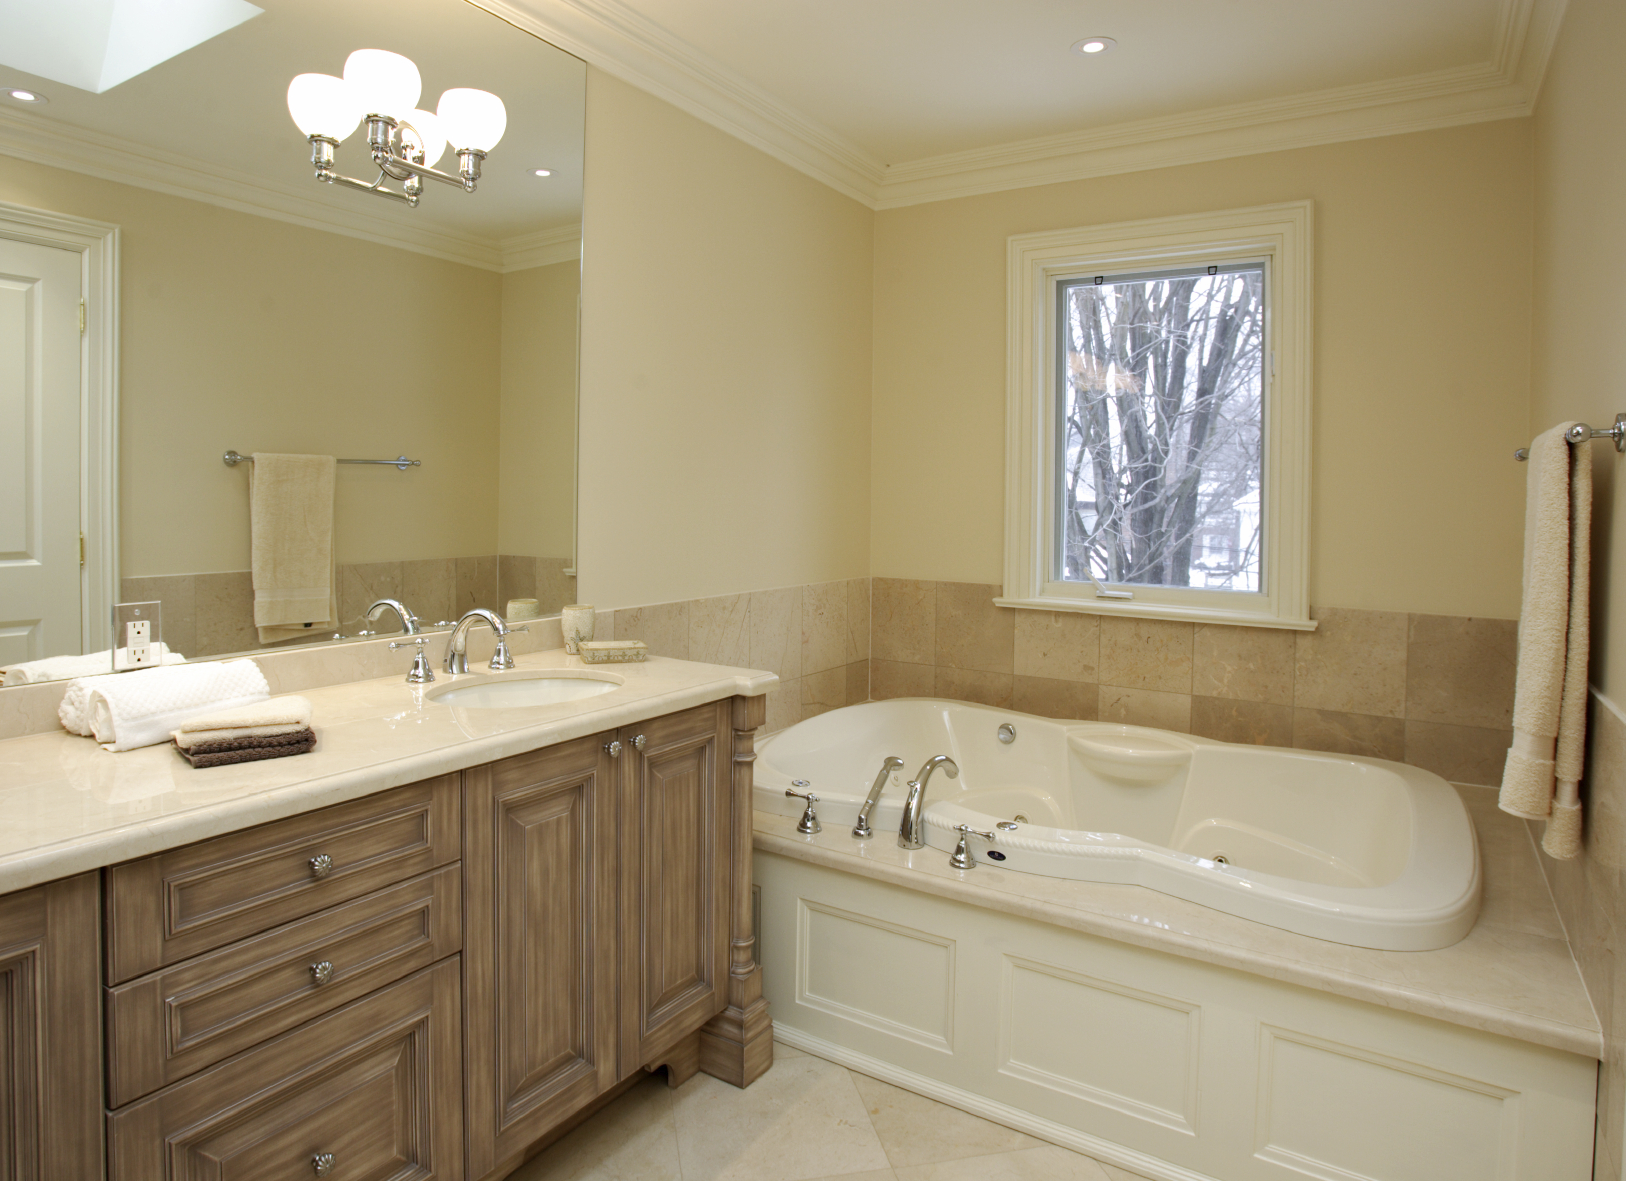 Tips For How To Properly Light A Bathroom